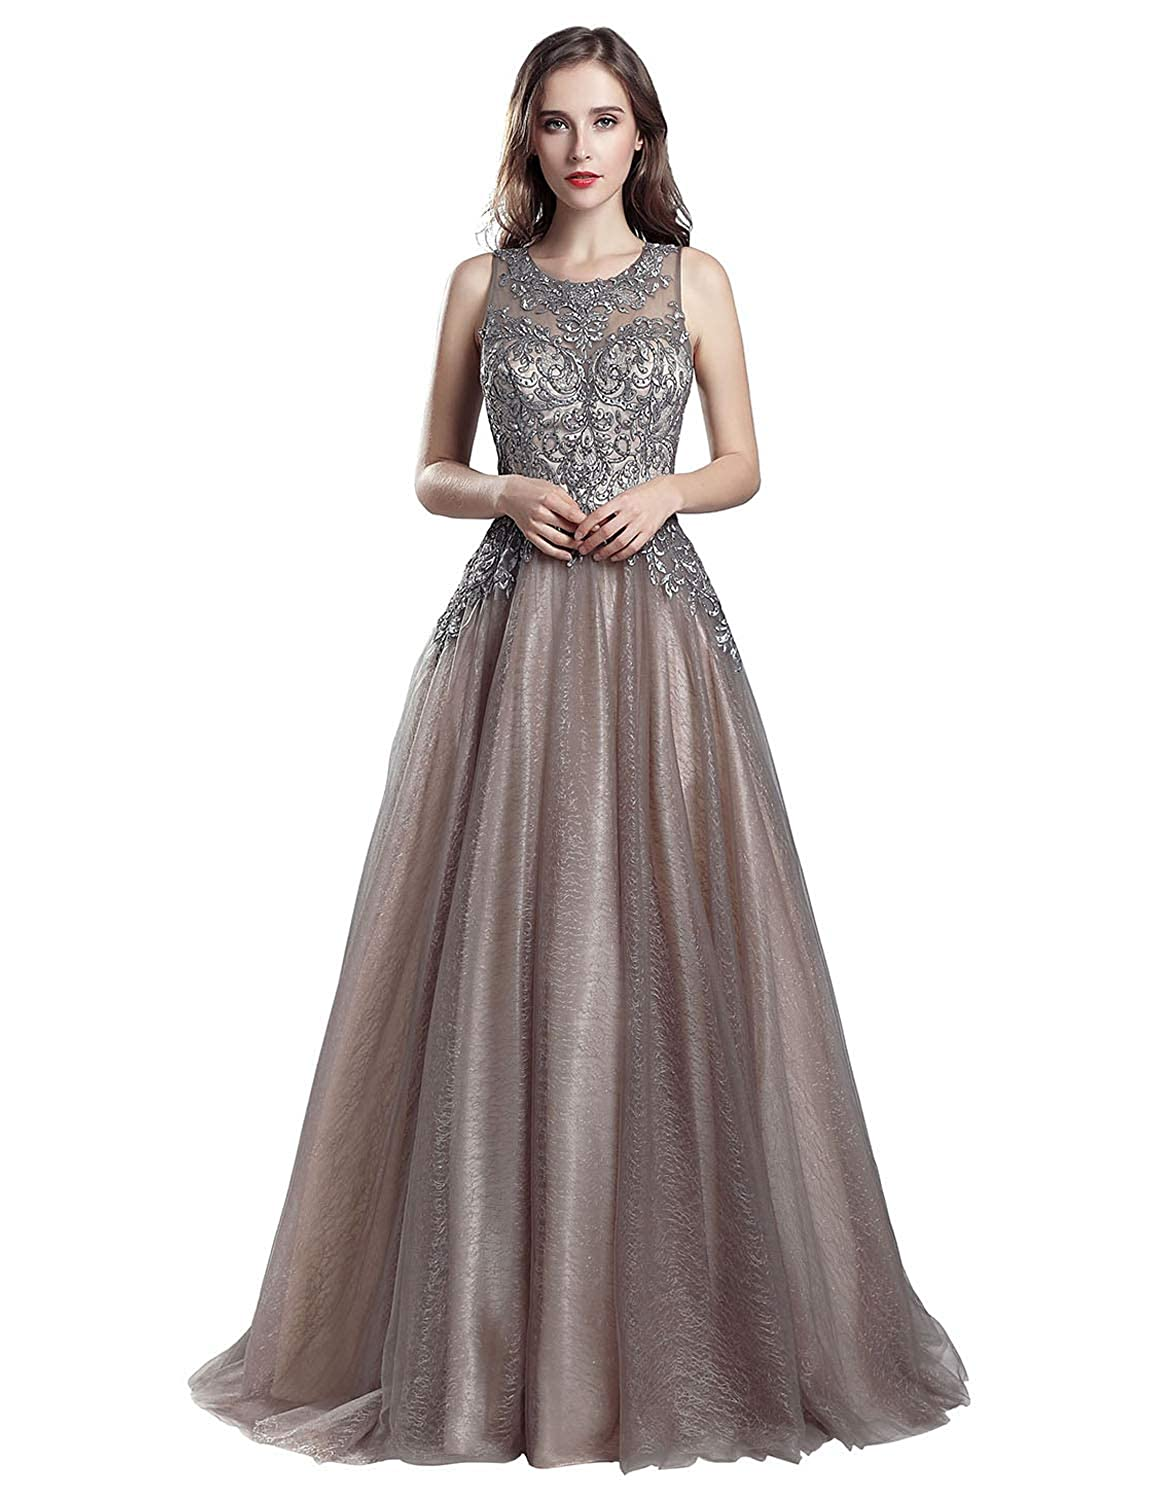 560mocha Sarahbridal Womens Lace Prom Dresses Formal Evening Gown with Half Sleeve SD328